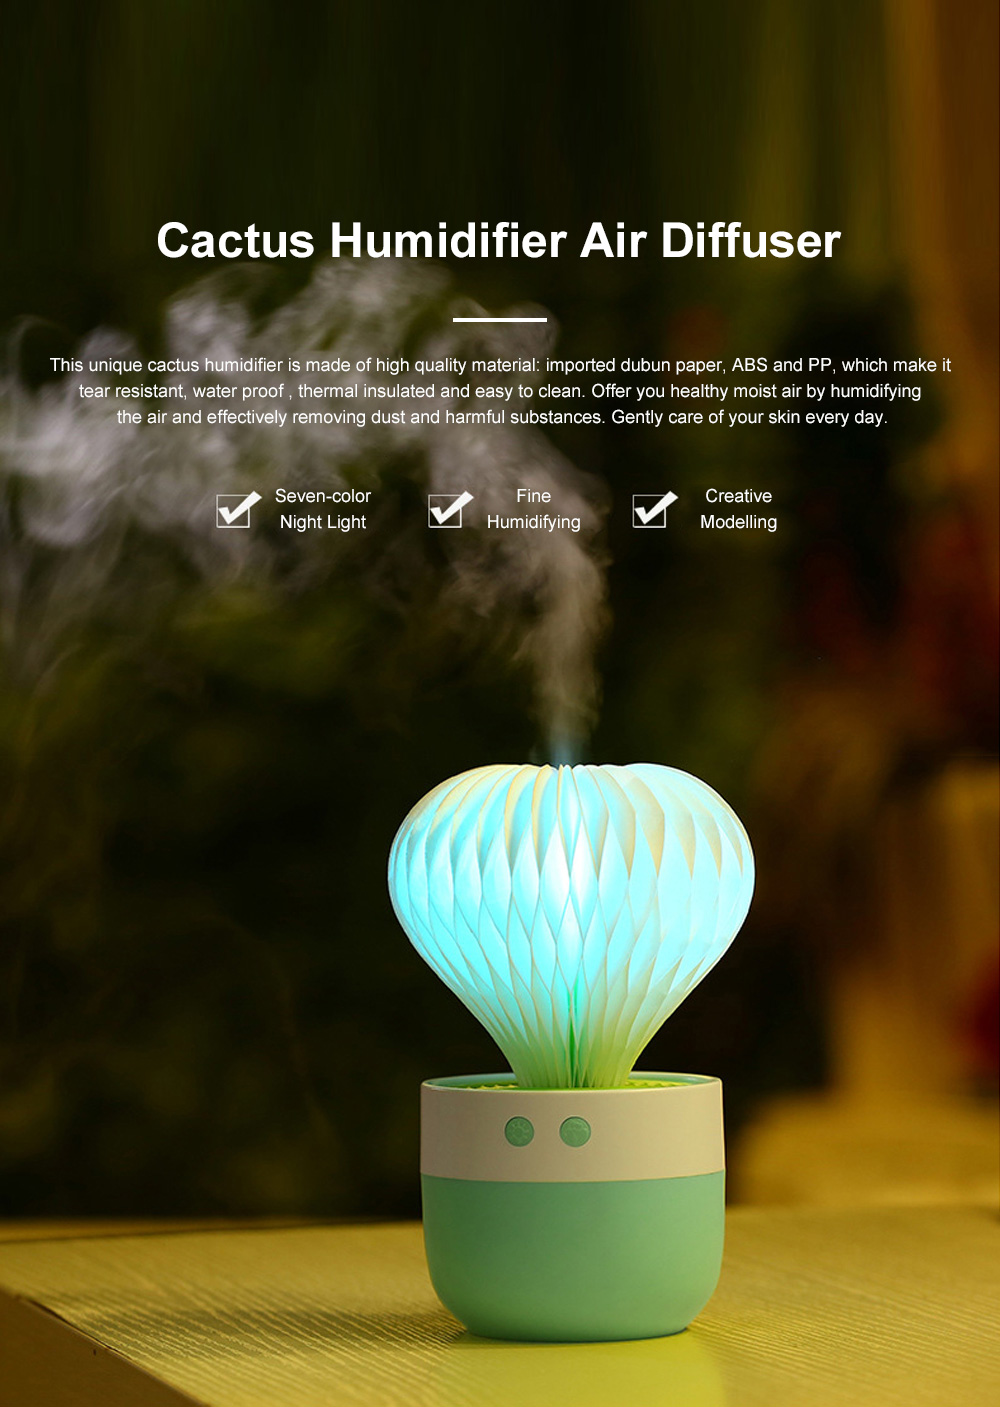 Portable Paper Cactus Humidifier USB Charging Air Diffuser 7 Colors LED Night Light for Home Office Car Travel 0